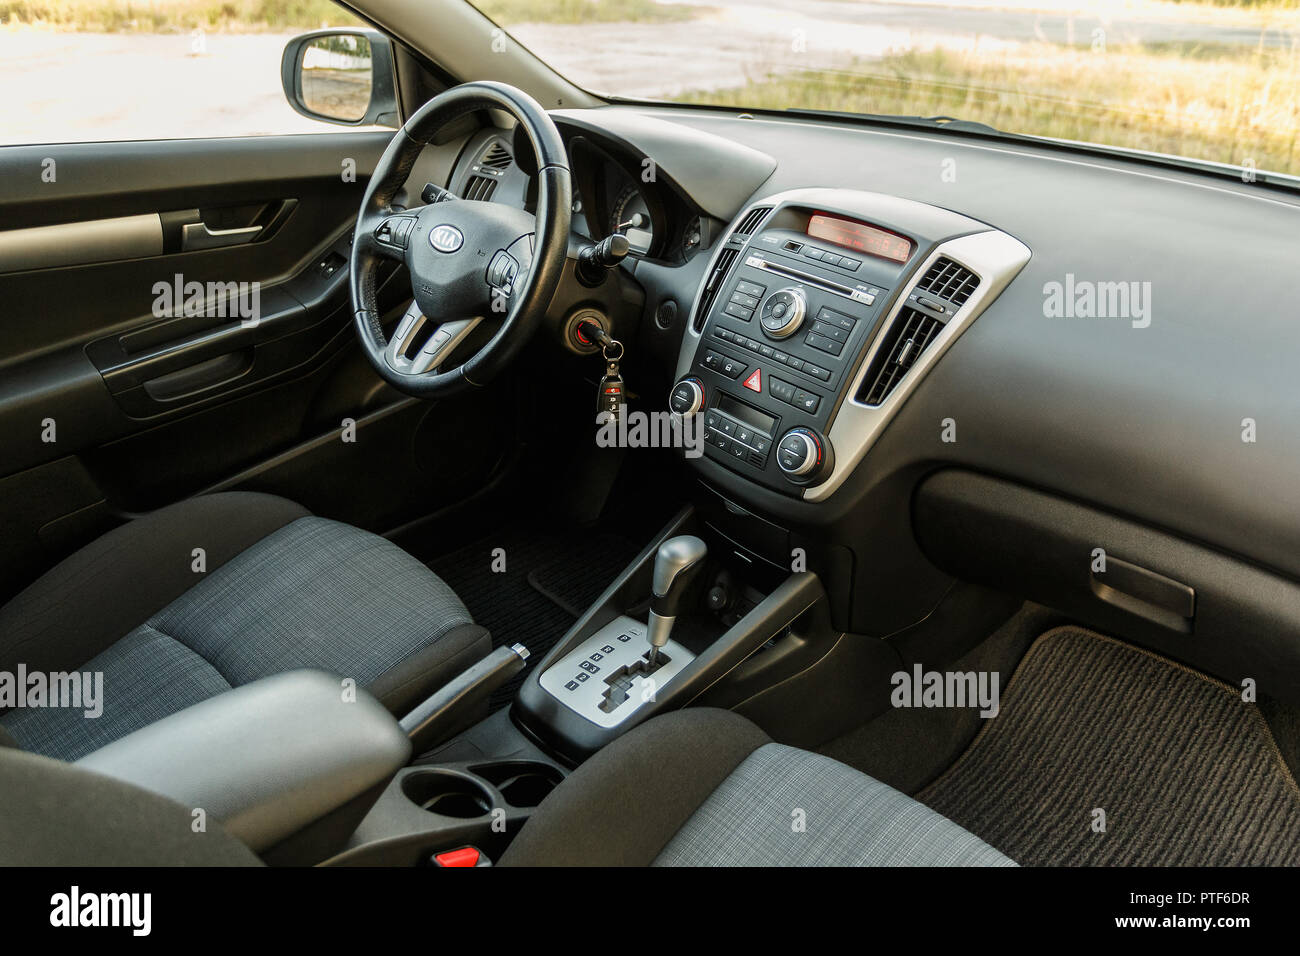 DNIPRO, UKRAINE - SEPTEMBER 05, 2017: KIA CEED, INTERIOR, DRIVER ...